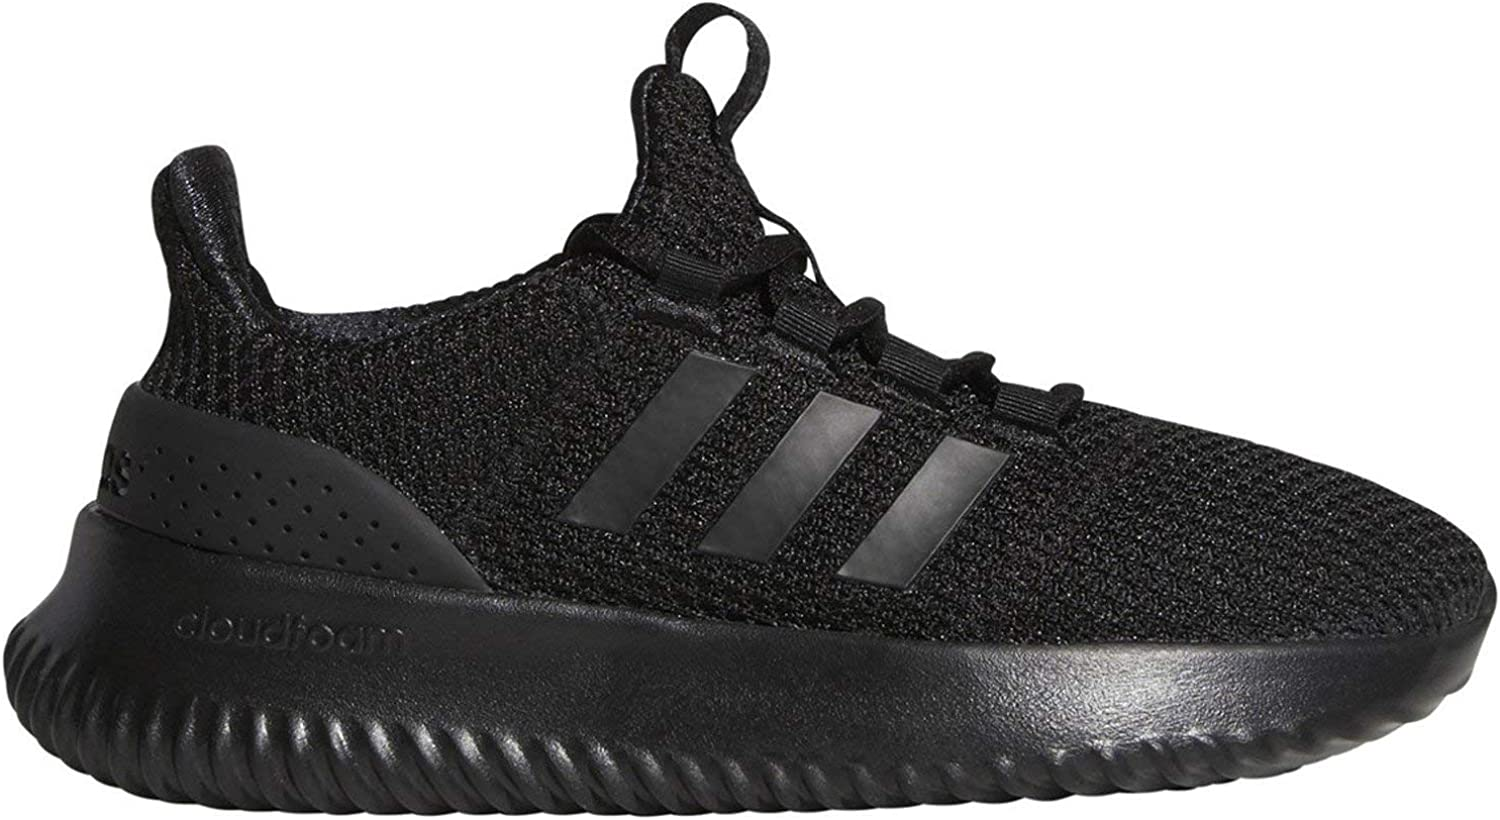 Adidas Unisex Adults' Cloudfoam Ultimate Fitness shoes